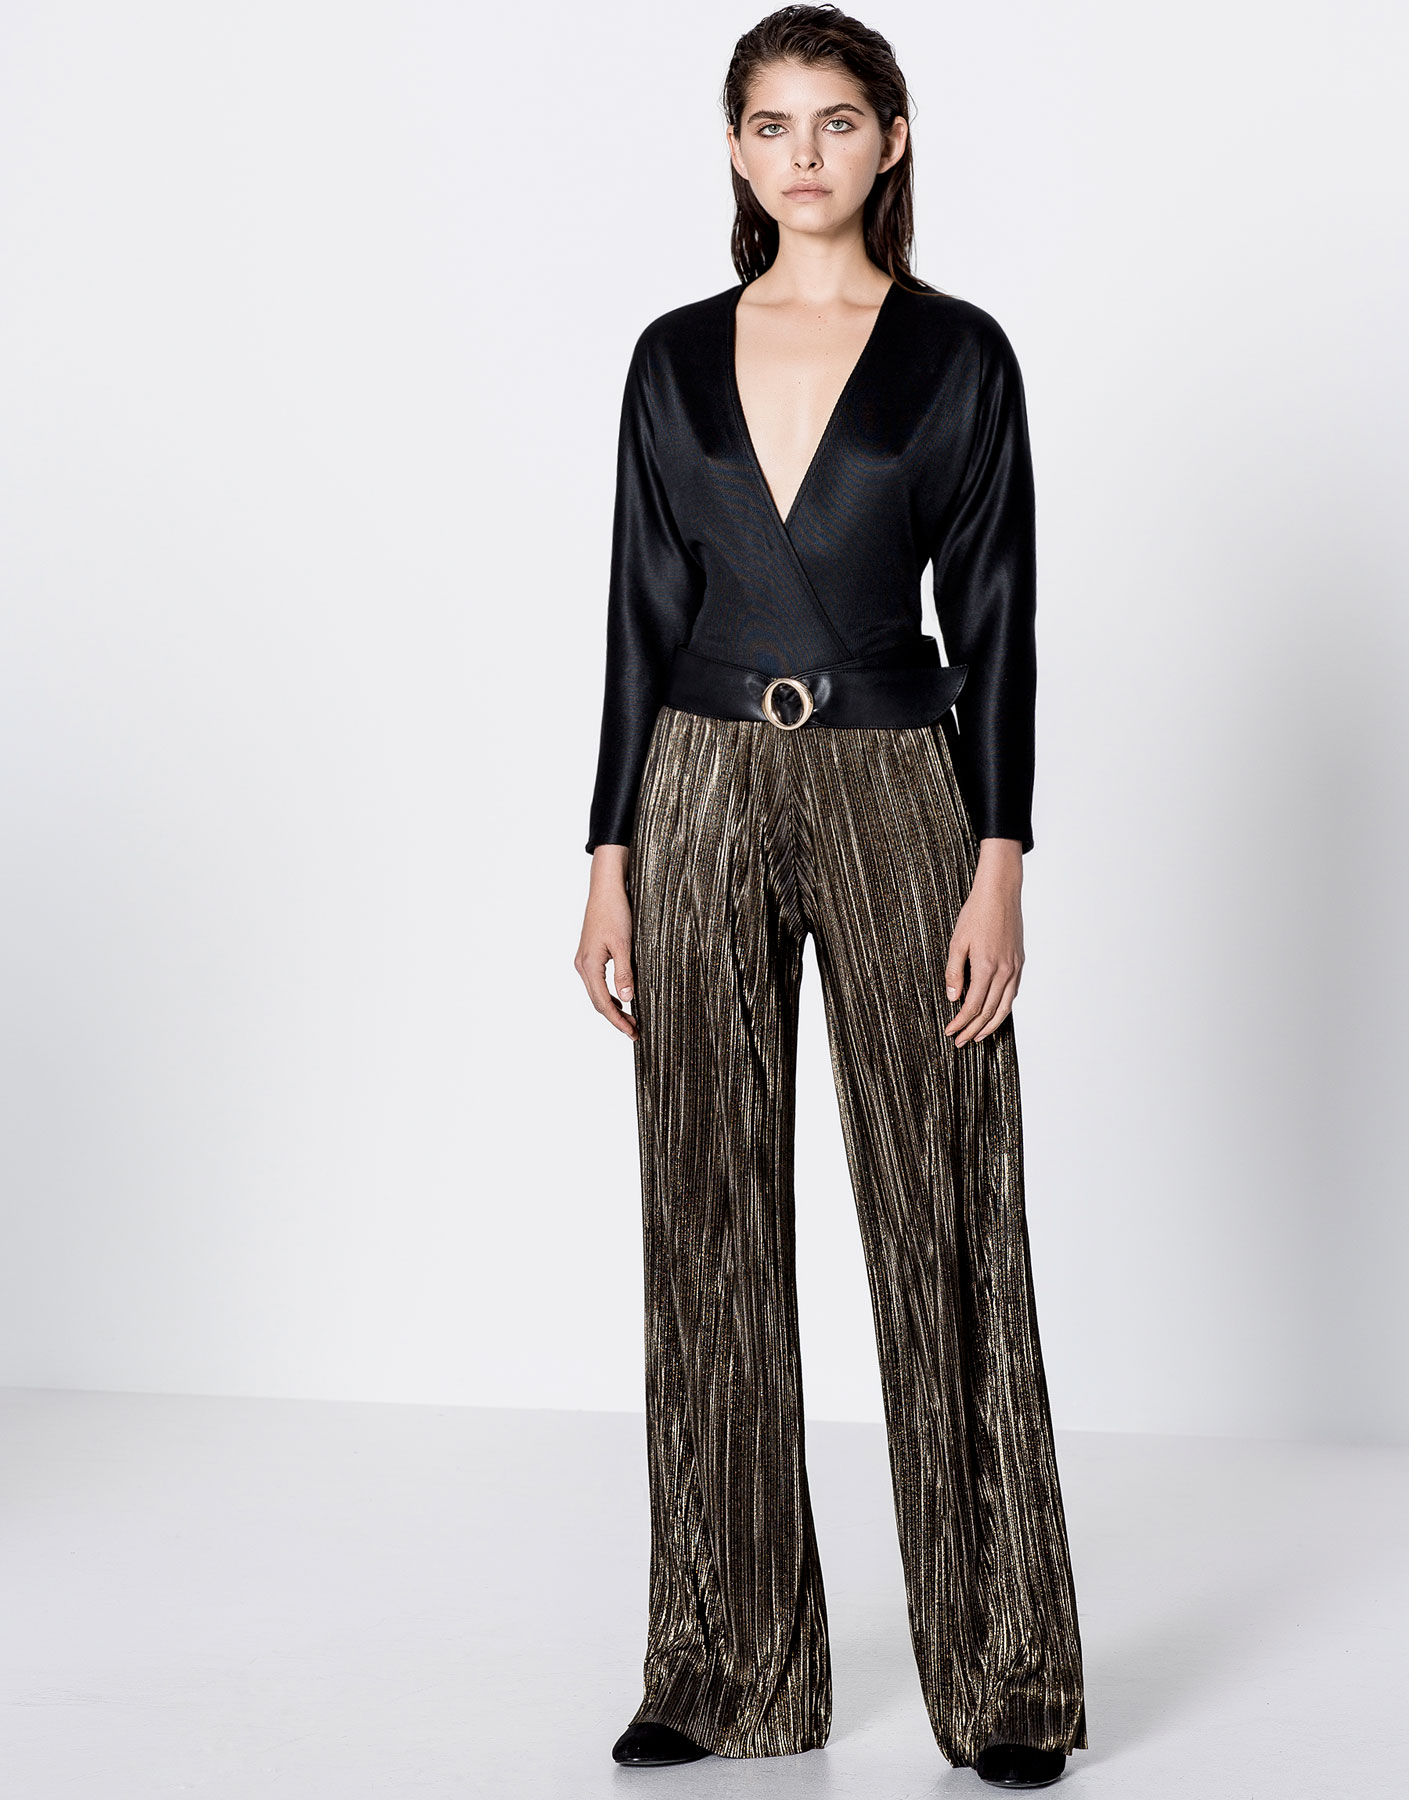 Pleated shiny gold trousers